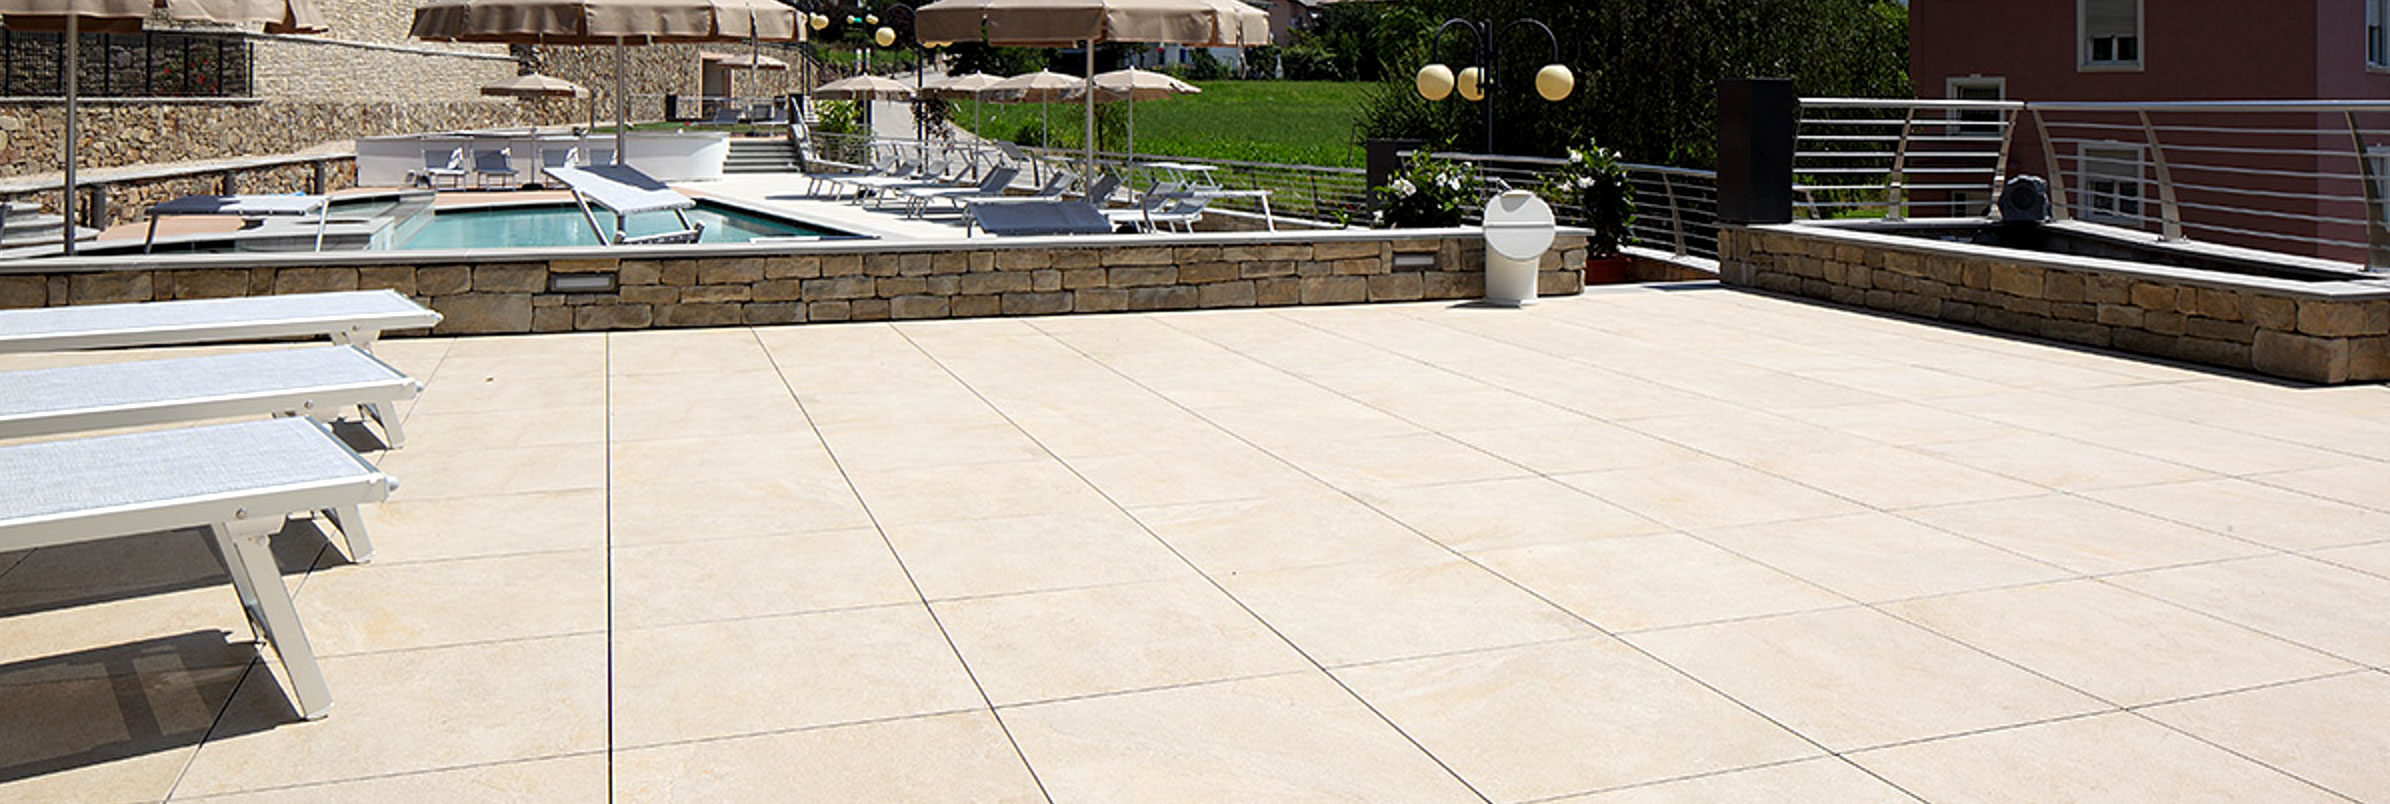 Pavimento ceramico exterior perfect galaxy with pavimento for Pavimento ceramico interior